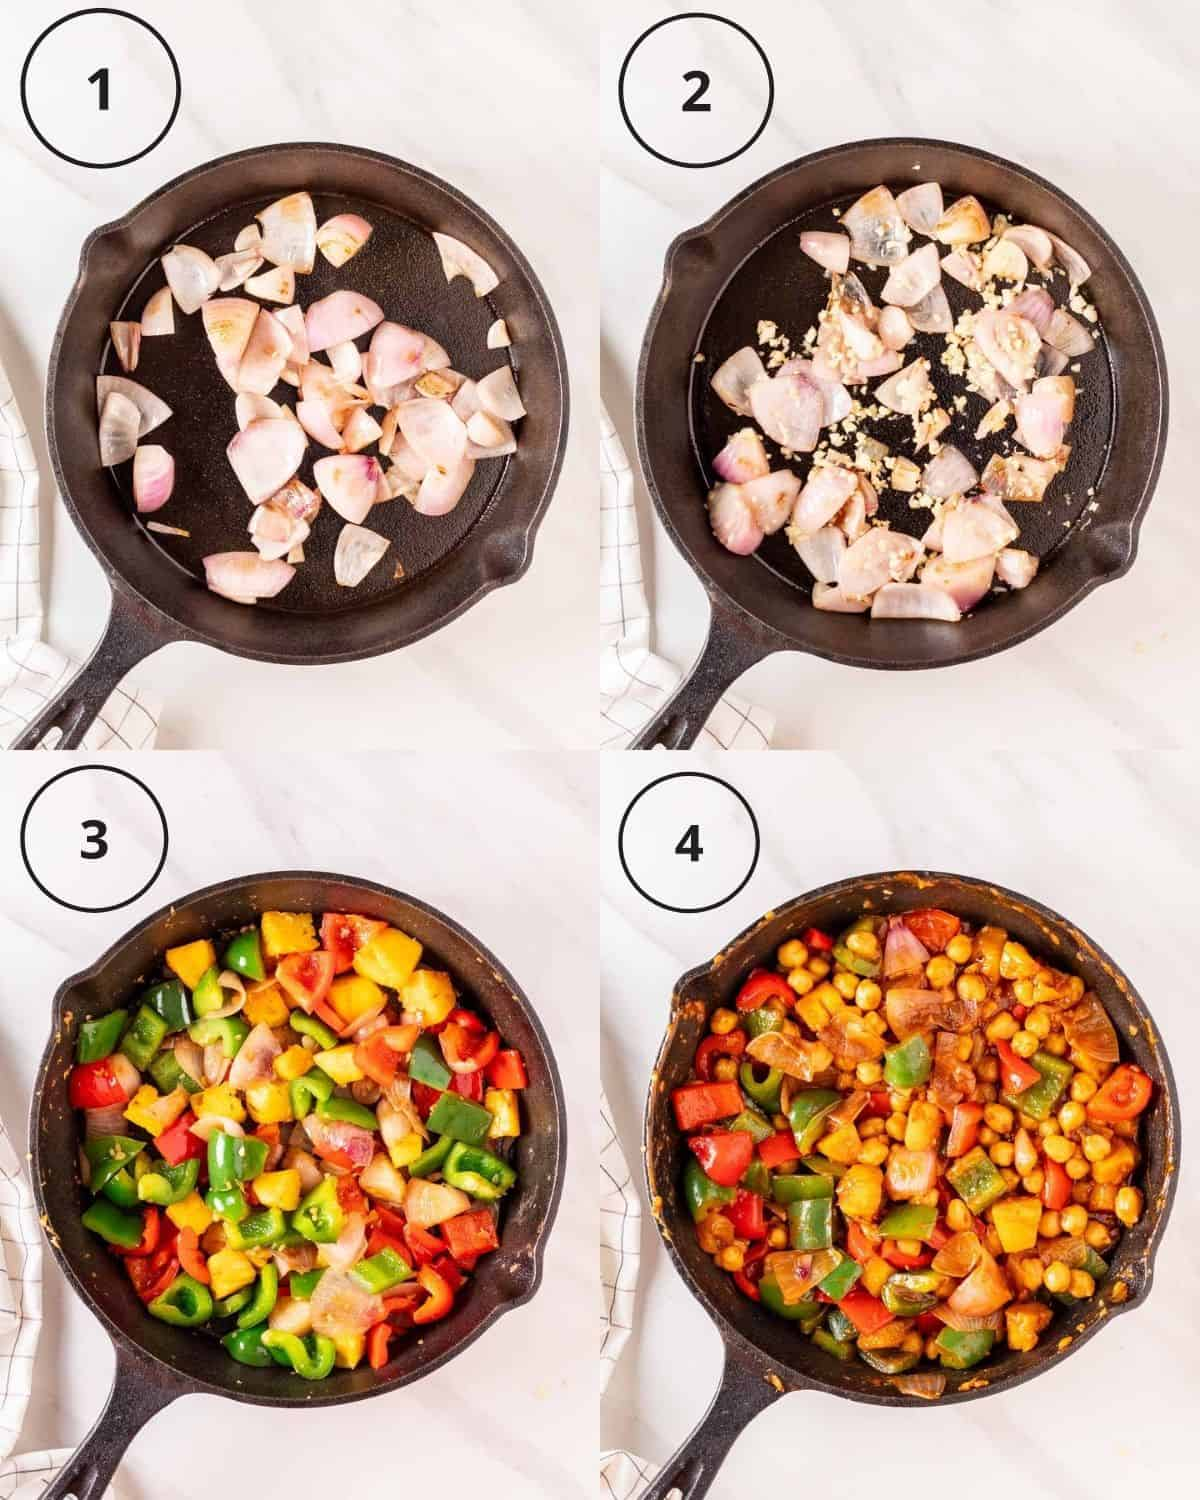 A 4 picture collage of cooking sweet and sour chickpeas.